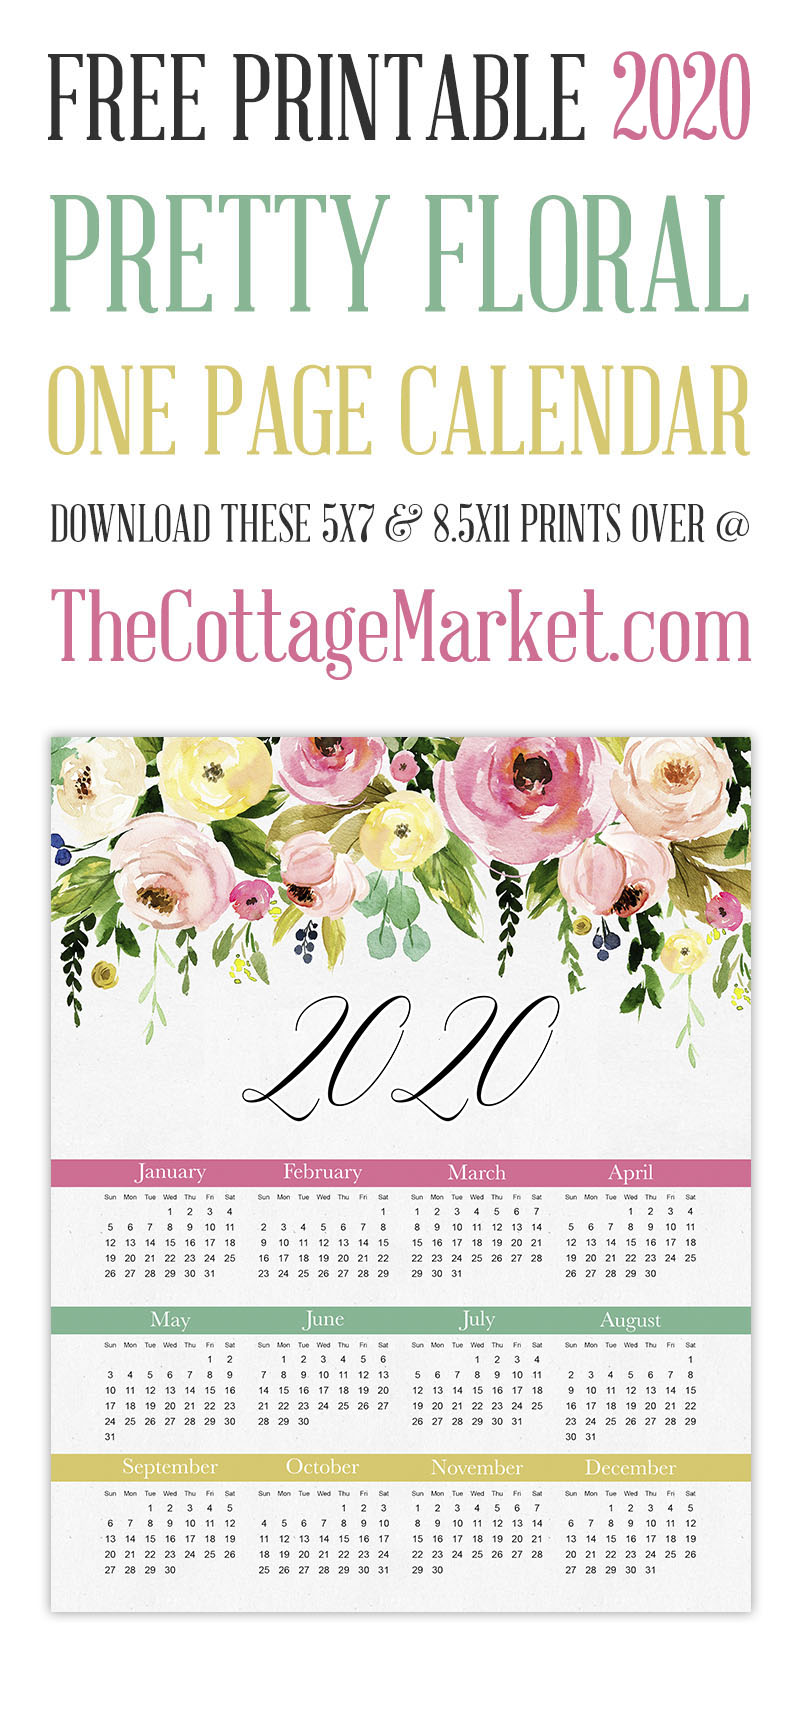 https://thecottagemarket.com/wp-content/uploads/2019/11/TCM-FloralDropDown-OnePage-2020-Calendar-tower-1.jpg